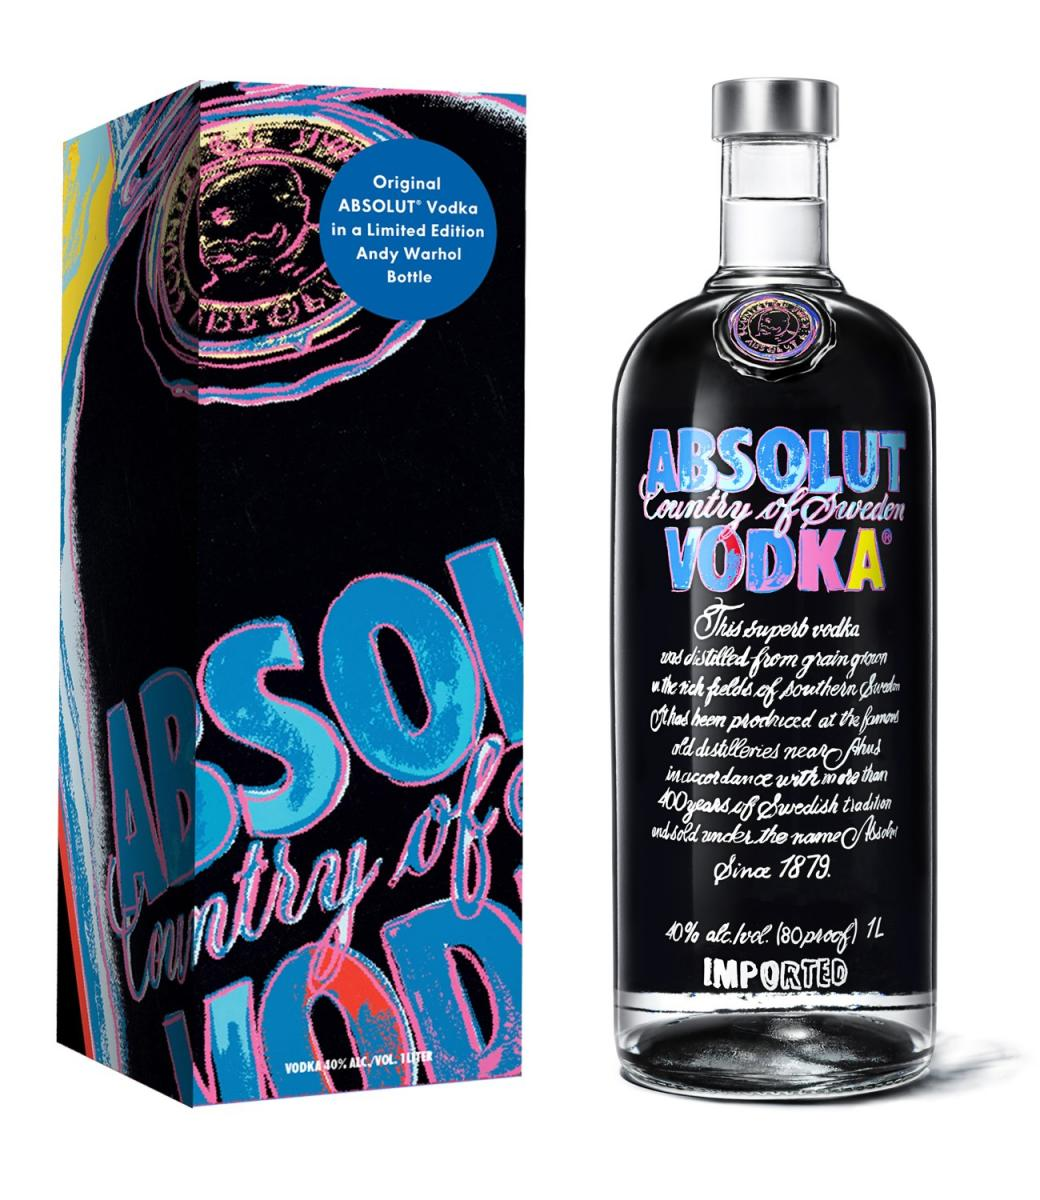 ABSOLUT Warhol Gift Carton & Bottle